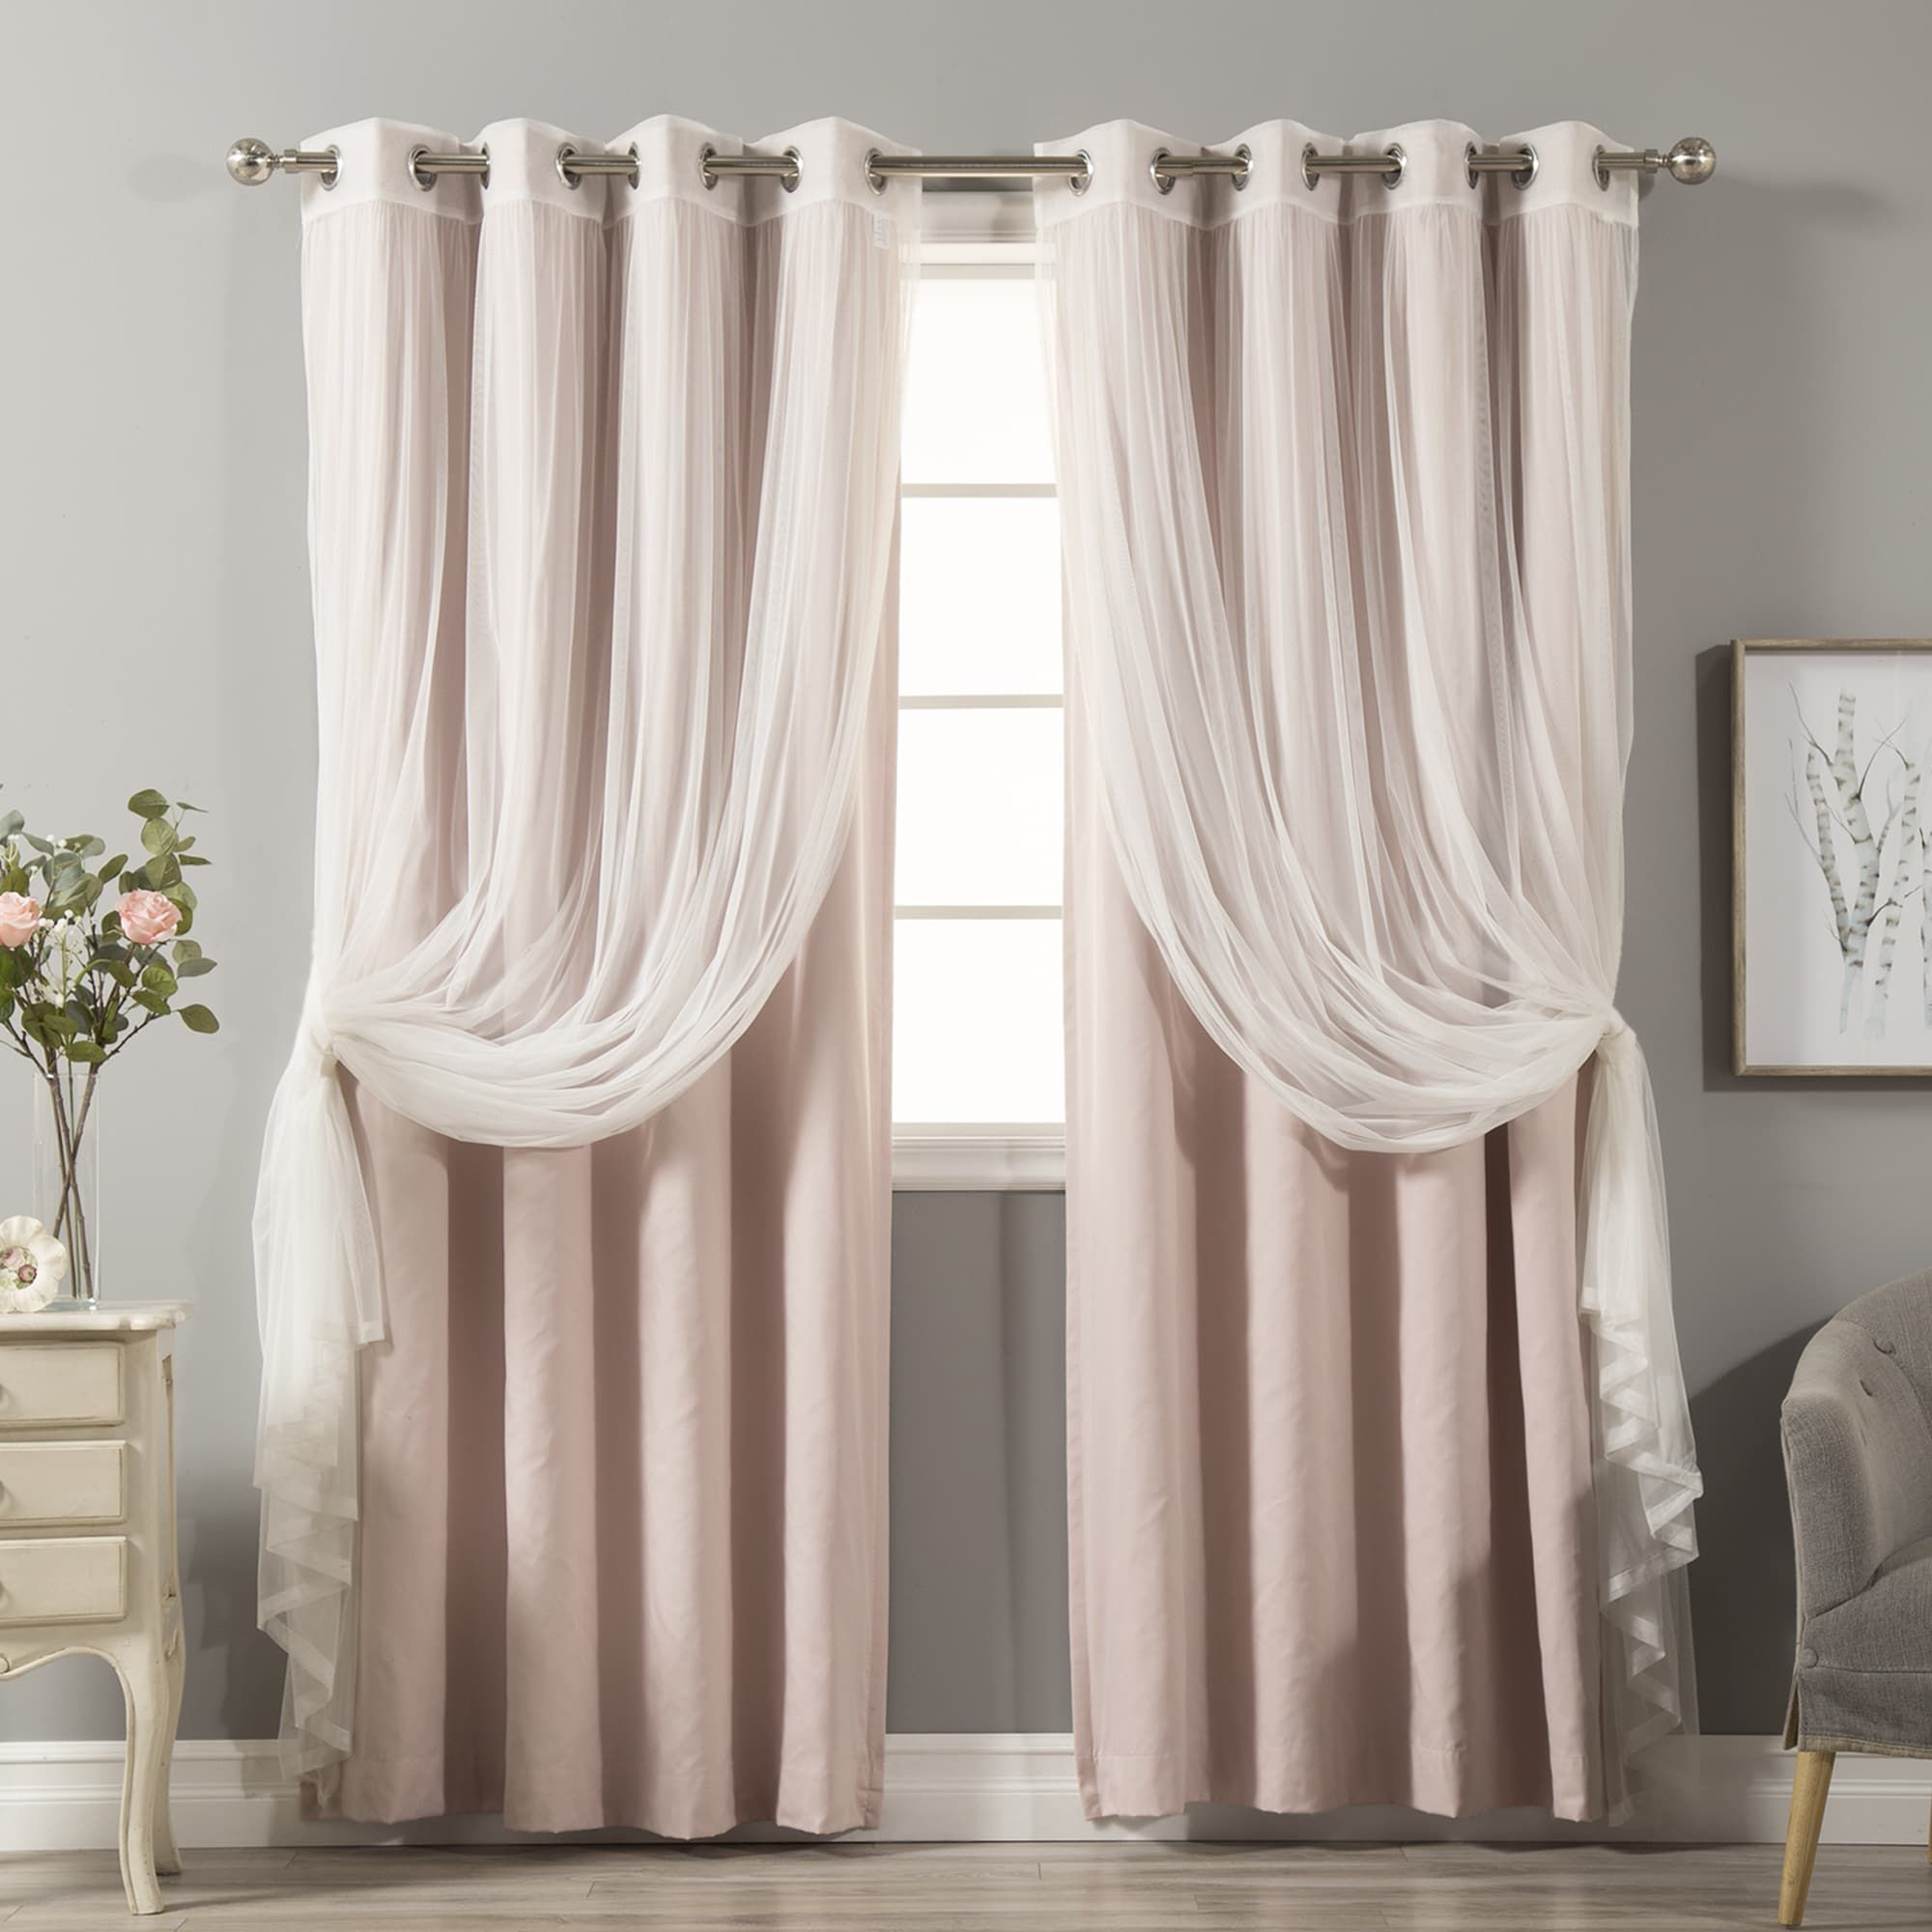 Aurora Home Mix Match Curtains Cotton Blackout And Tulle Lace